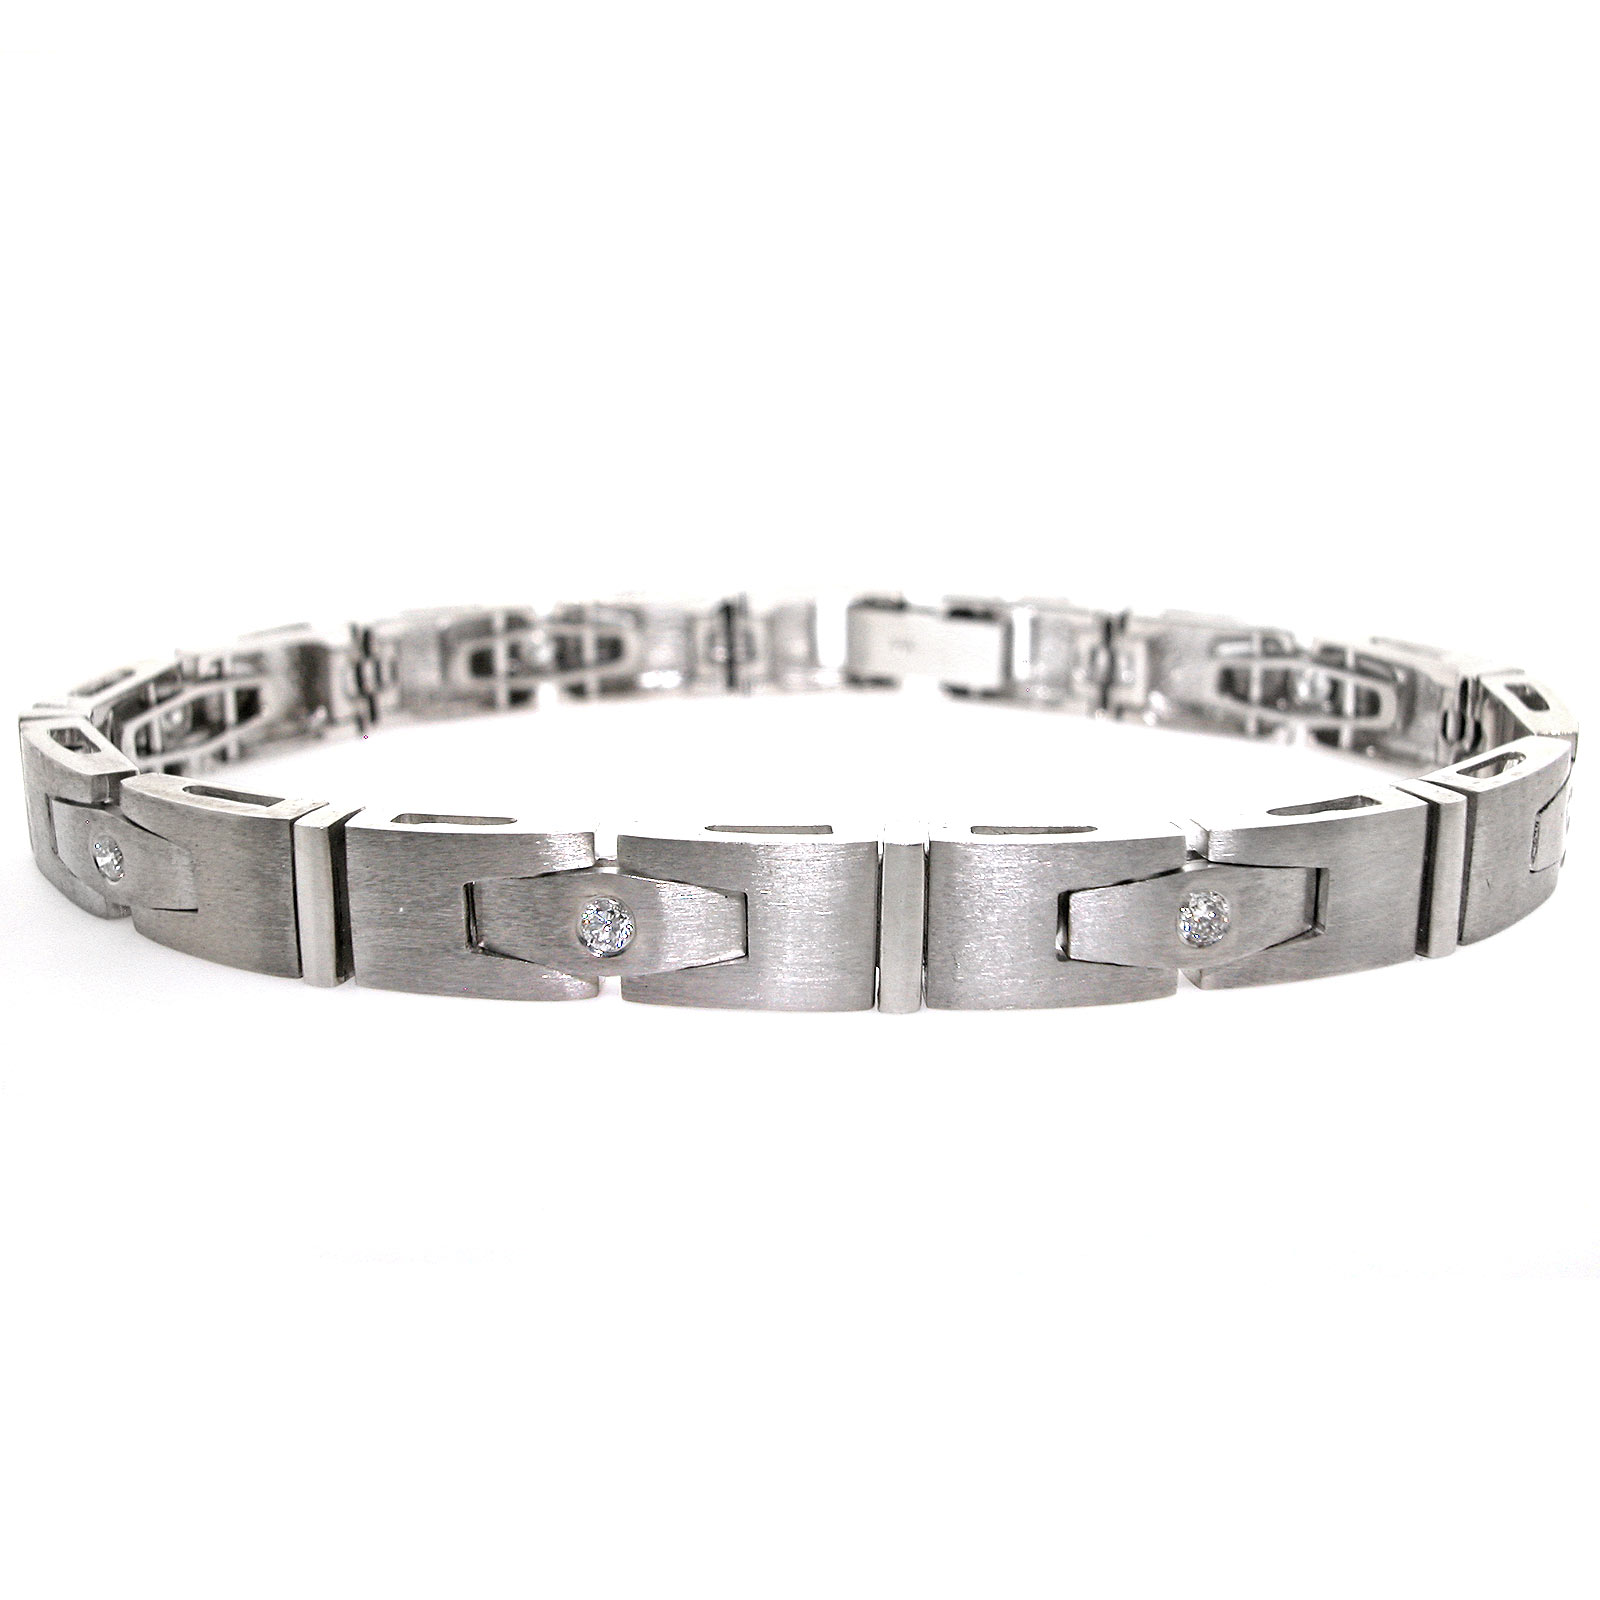 white gold bracelets item specifics lgjbkhi